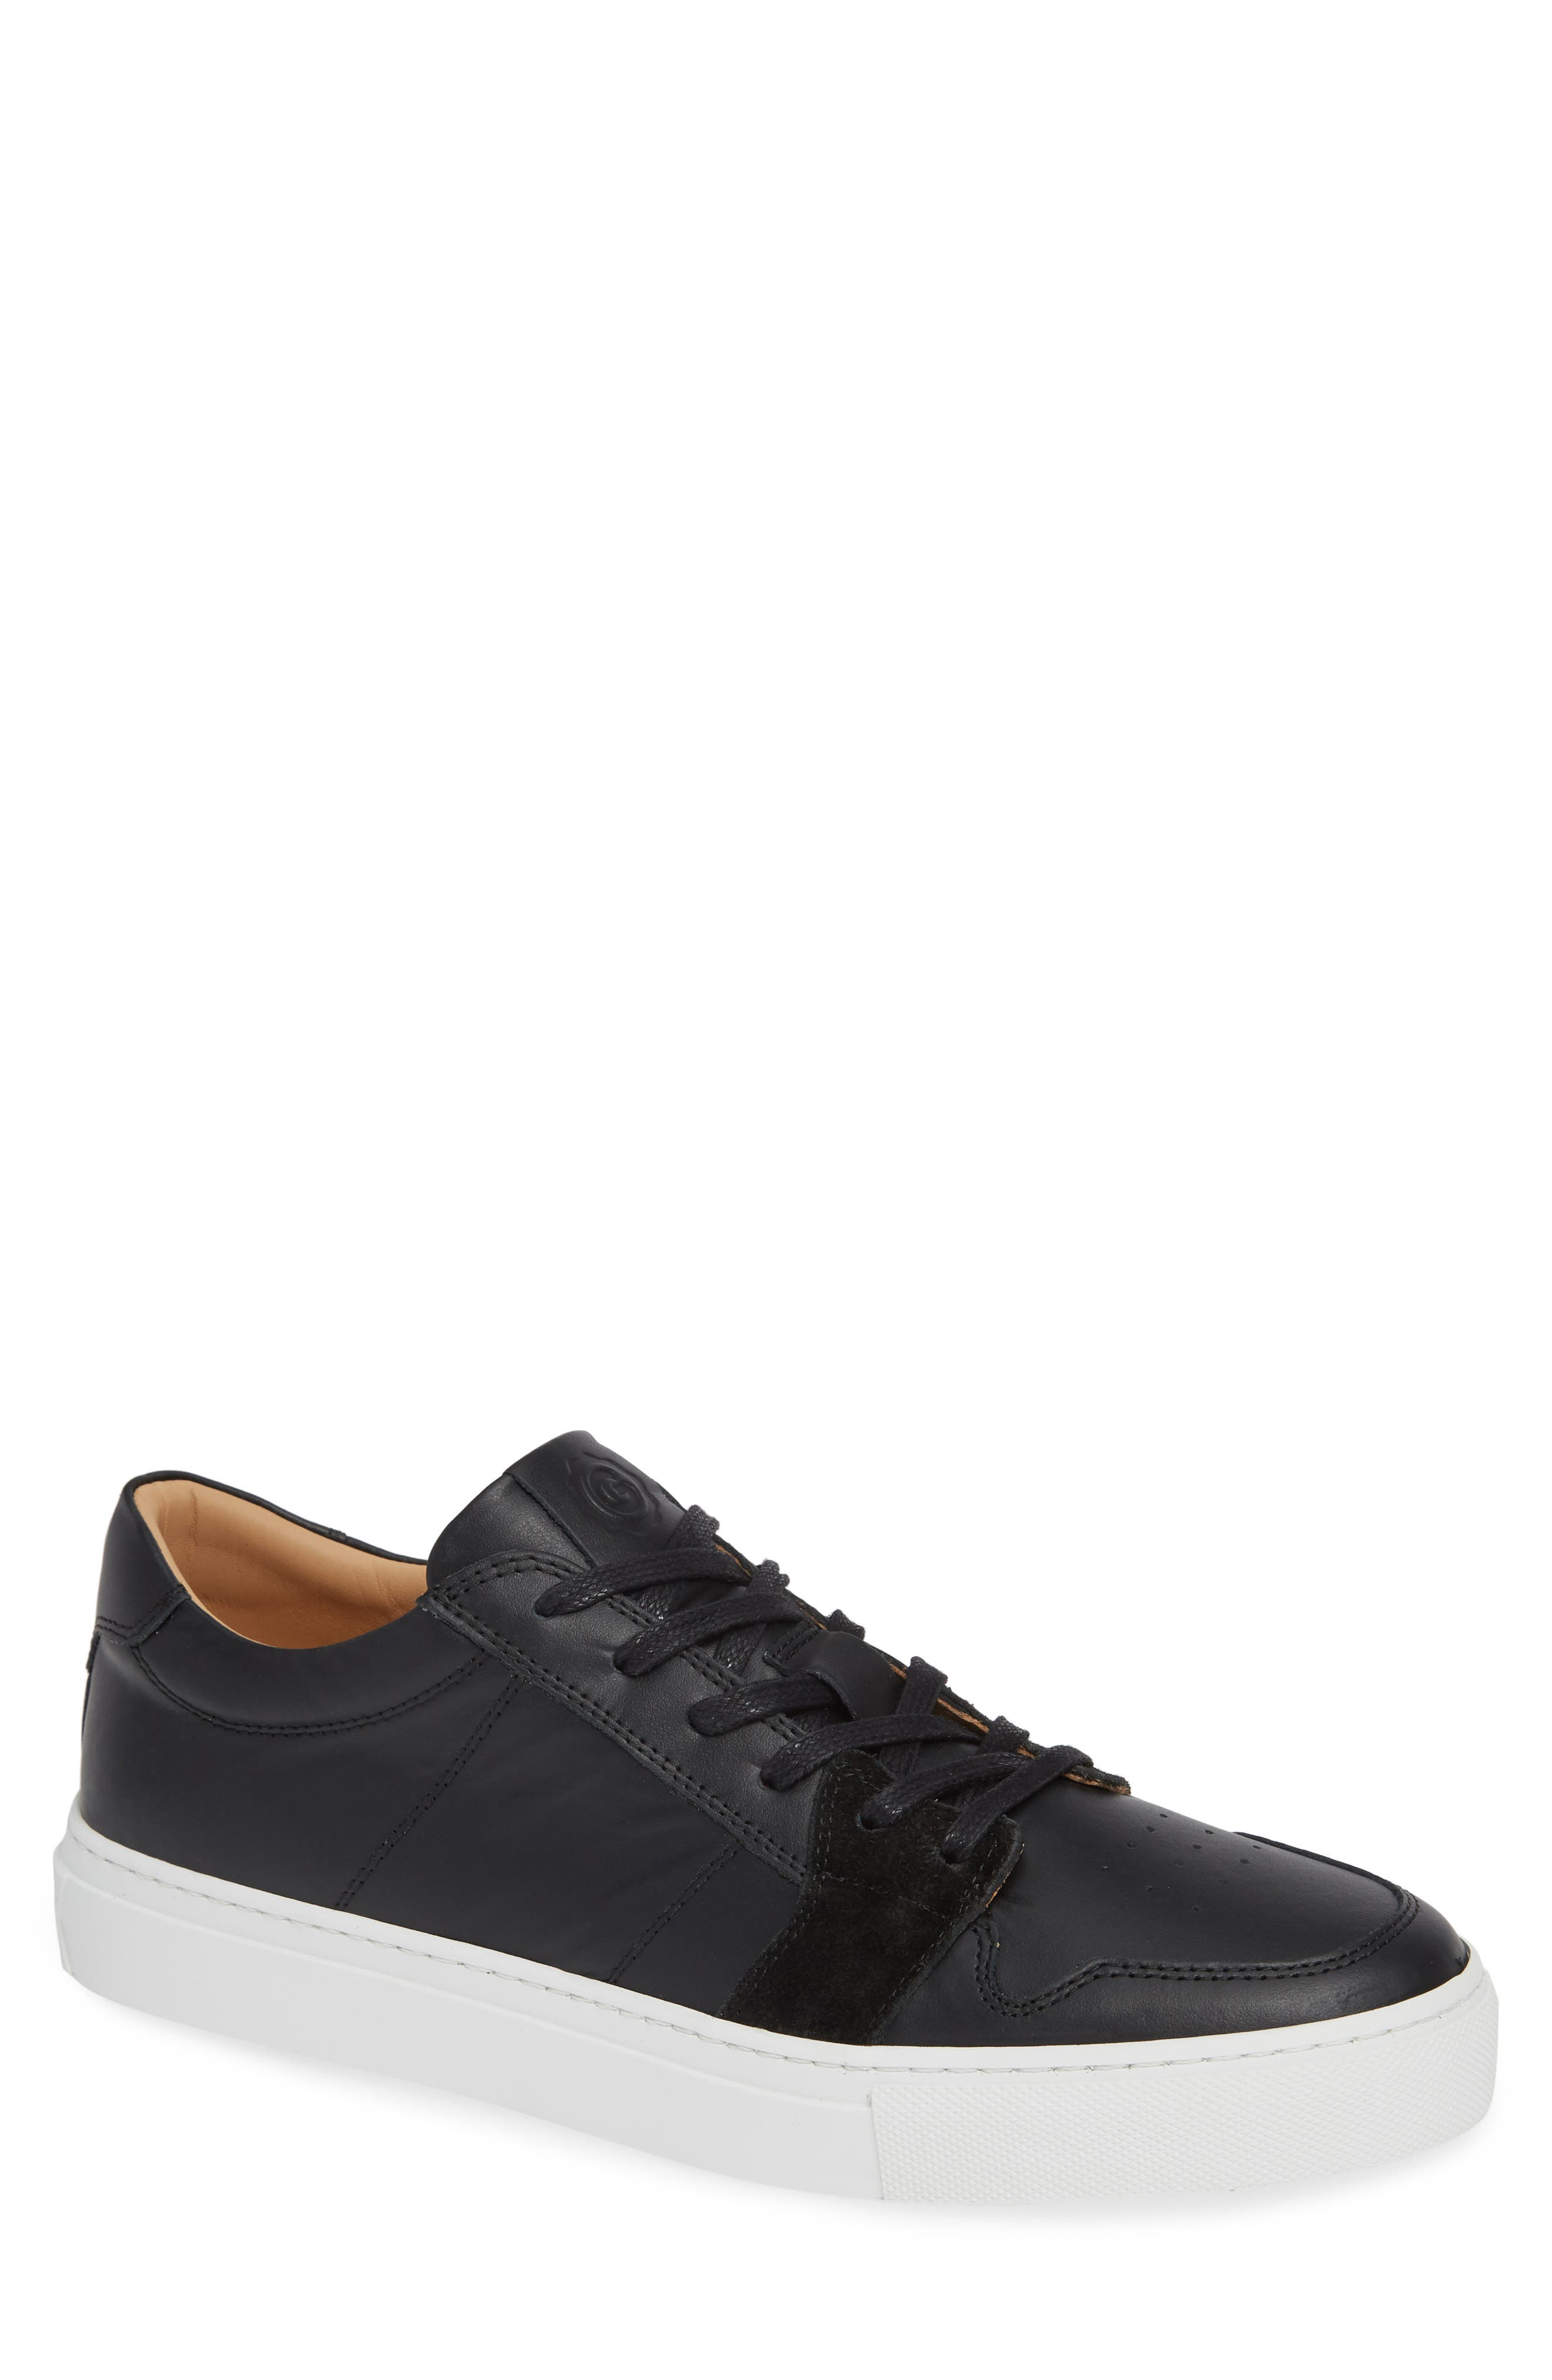 Nick Wooster x GREATS Court Low Top Sneaker,                         Main,                         color, BLACK